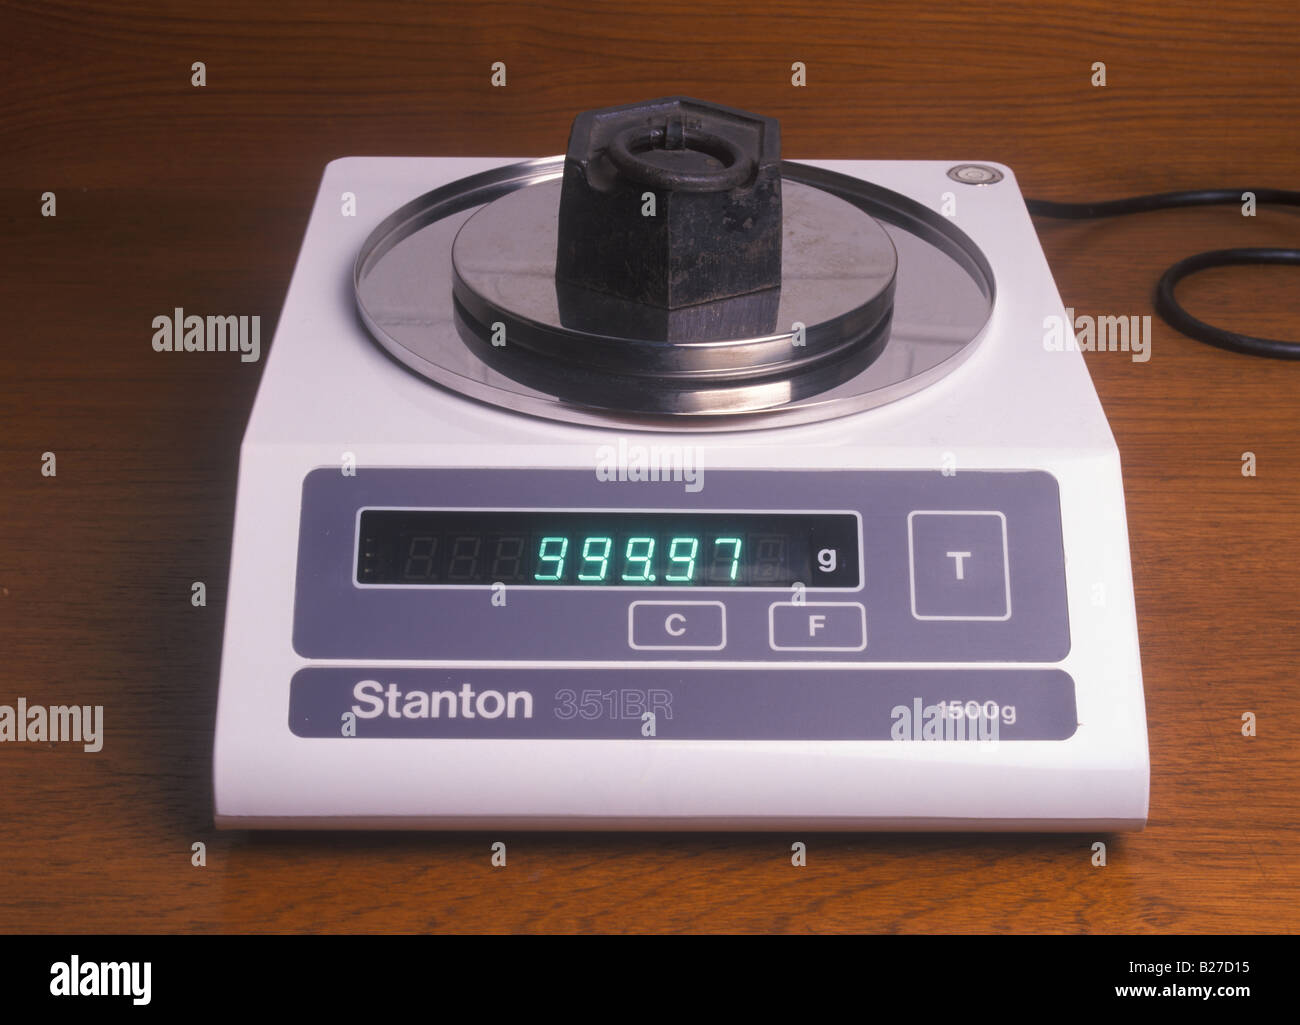 weighing a 1kg mass on a top pan balance - Stock Image